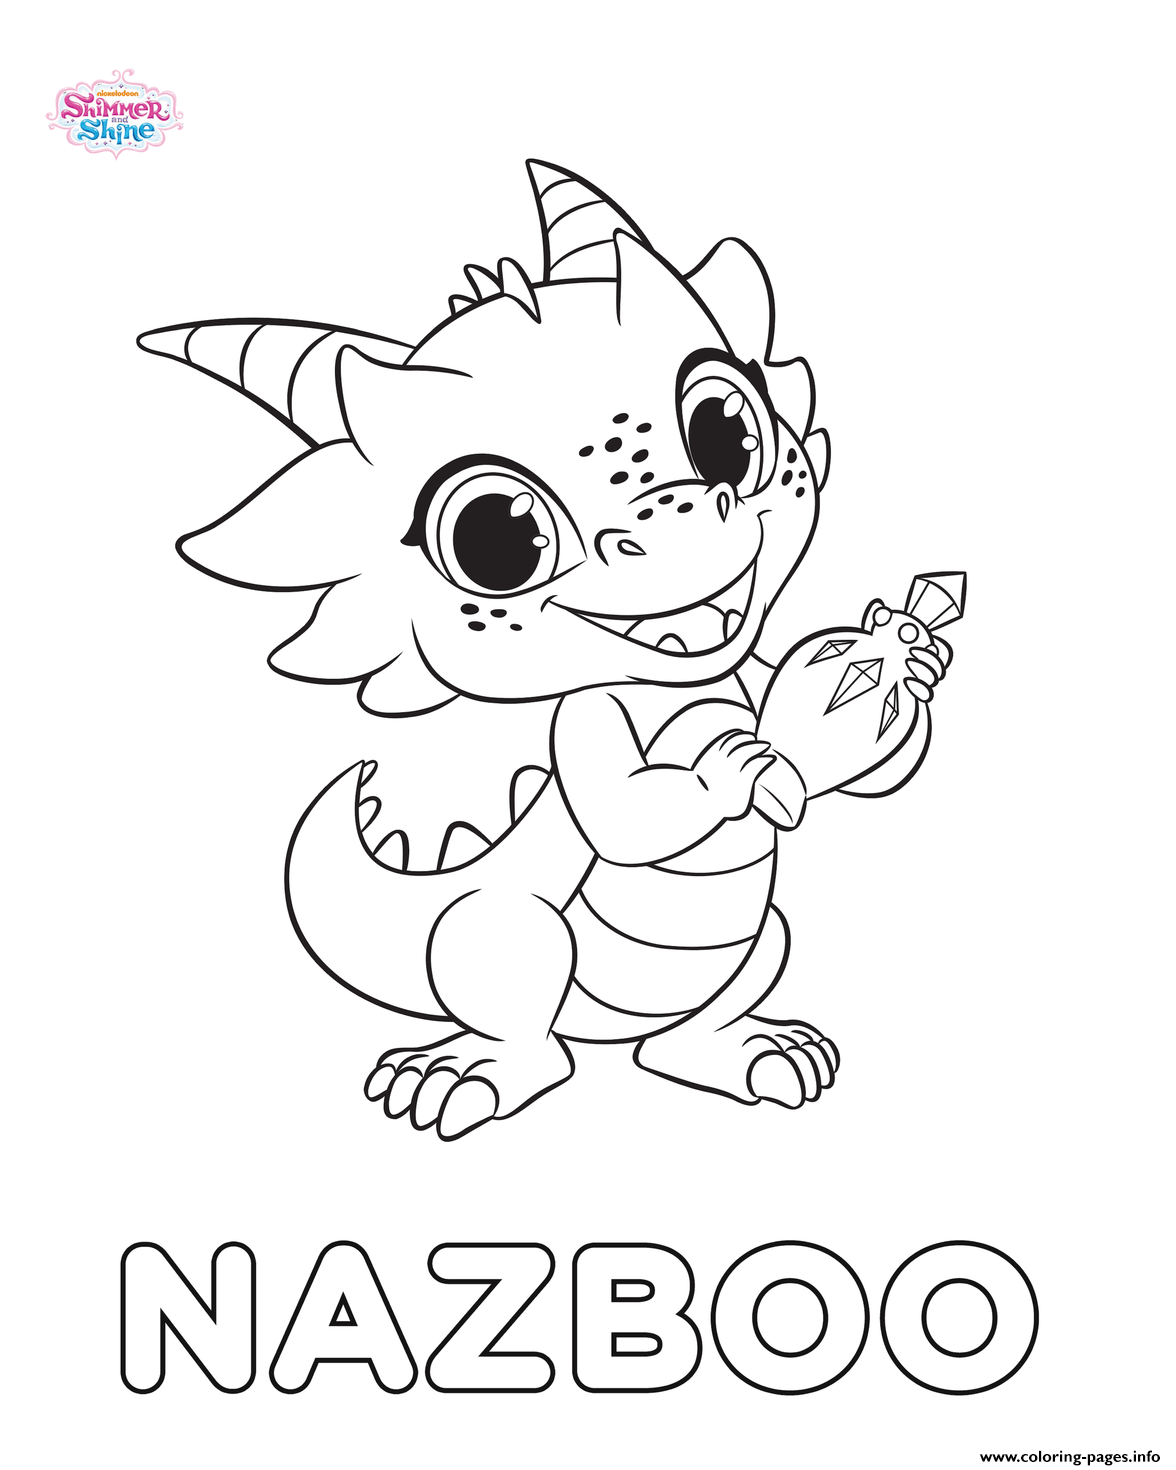 Print Shimmer And Shine Nazboo coloring pages | Kiddo Crap | Pinterest